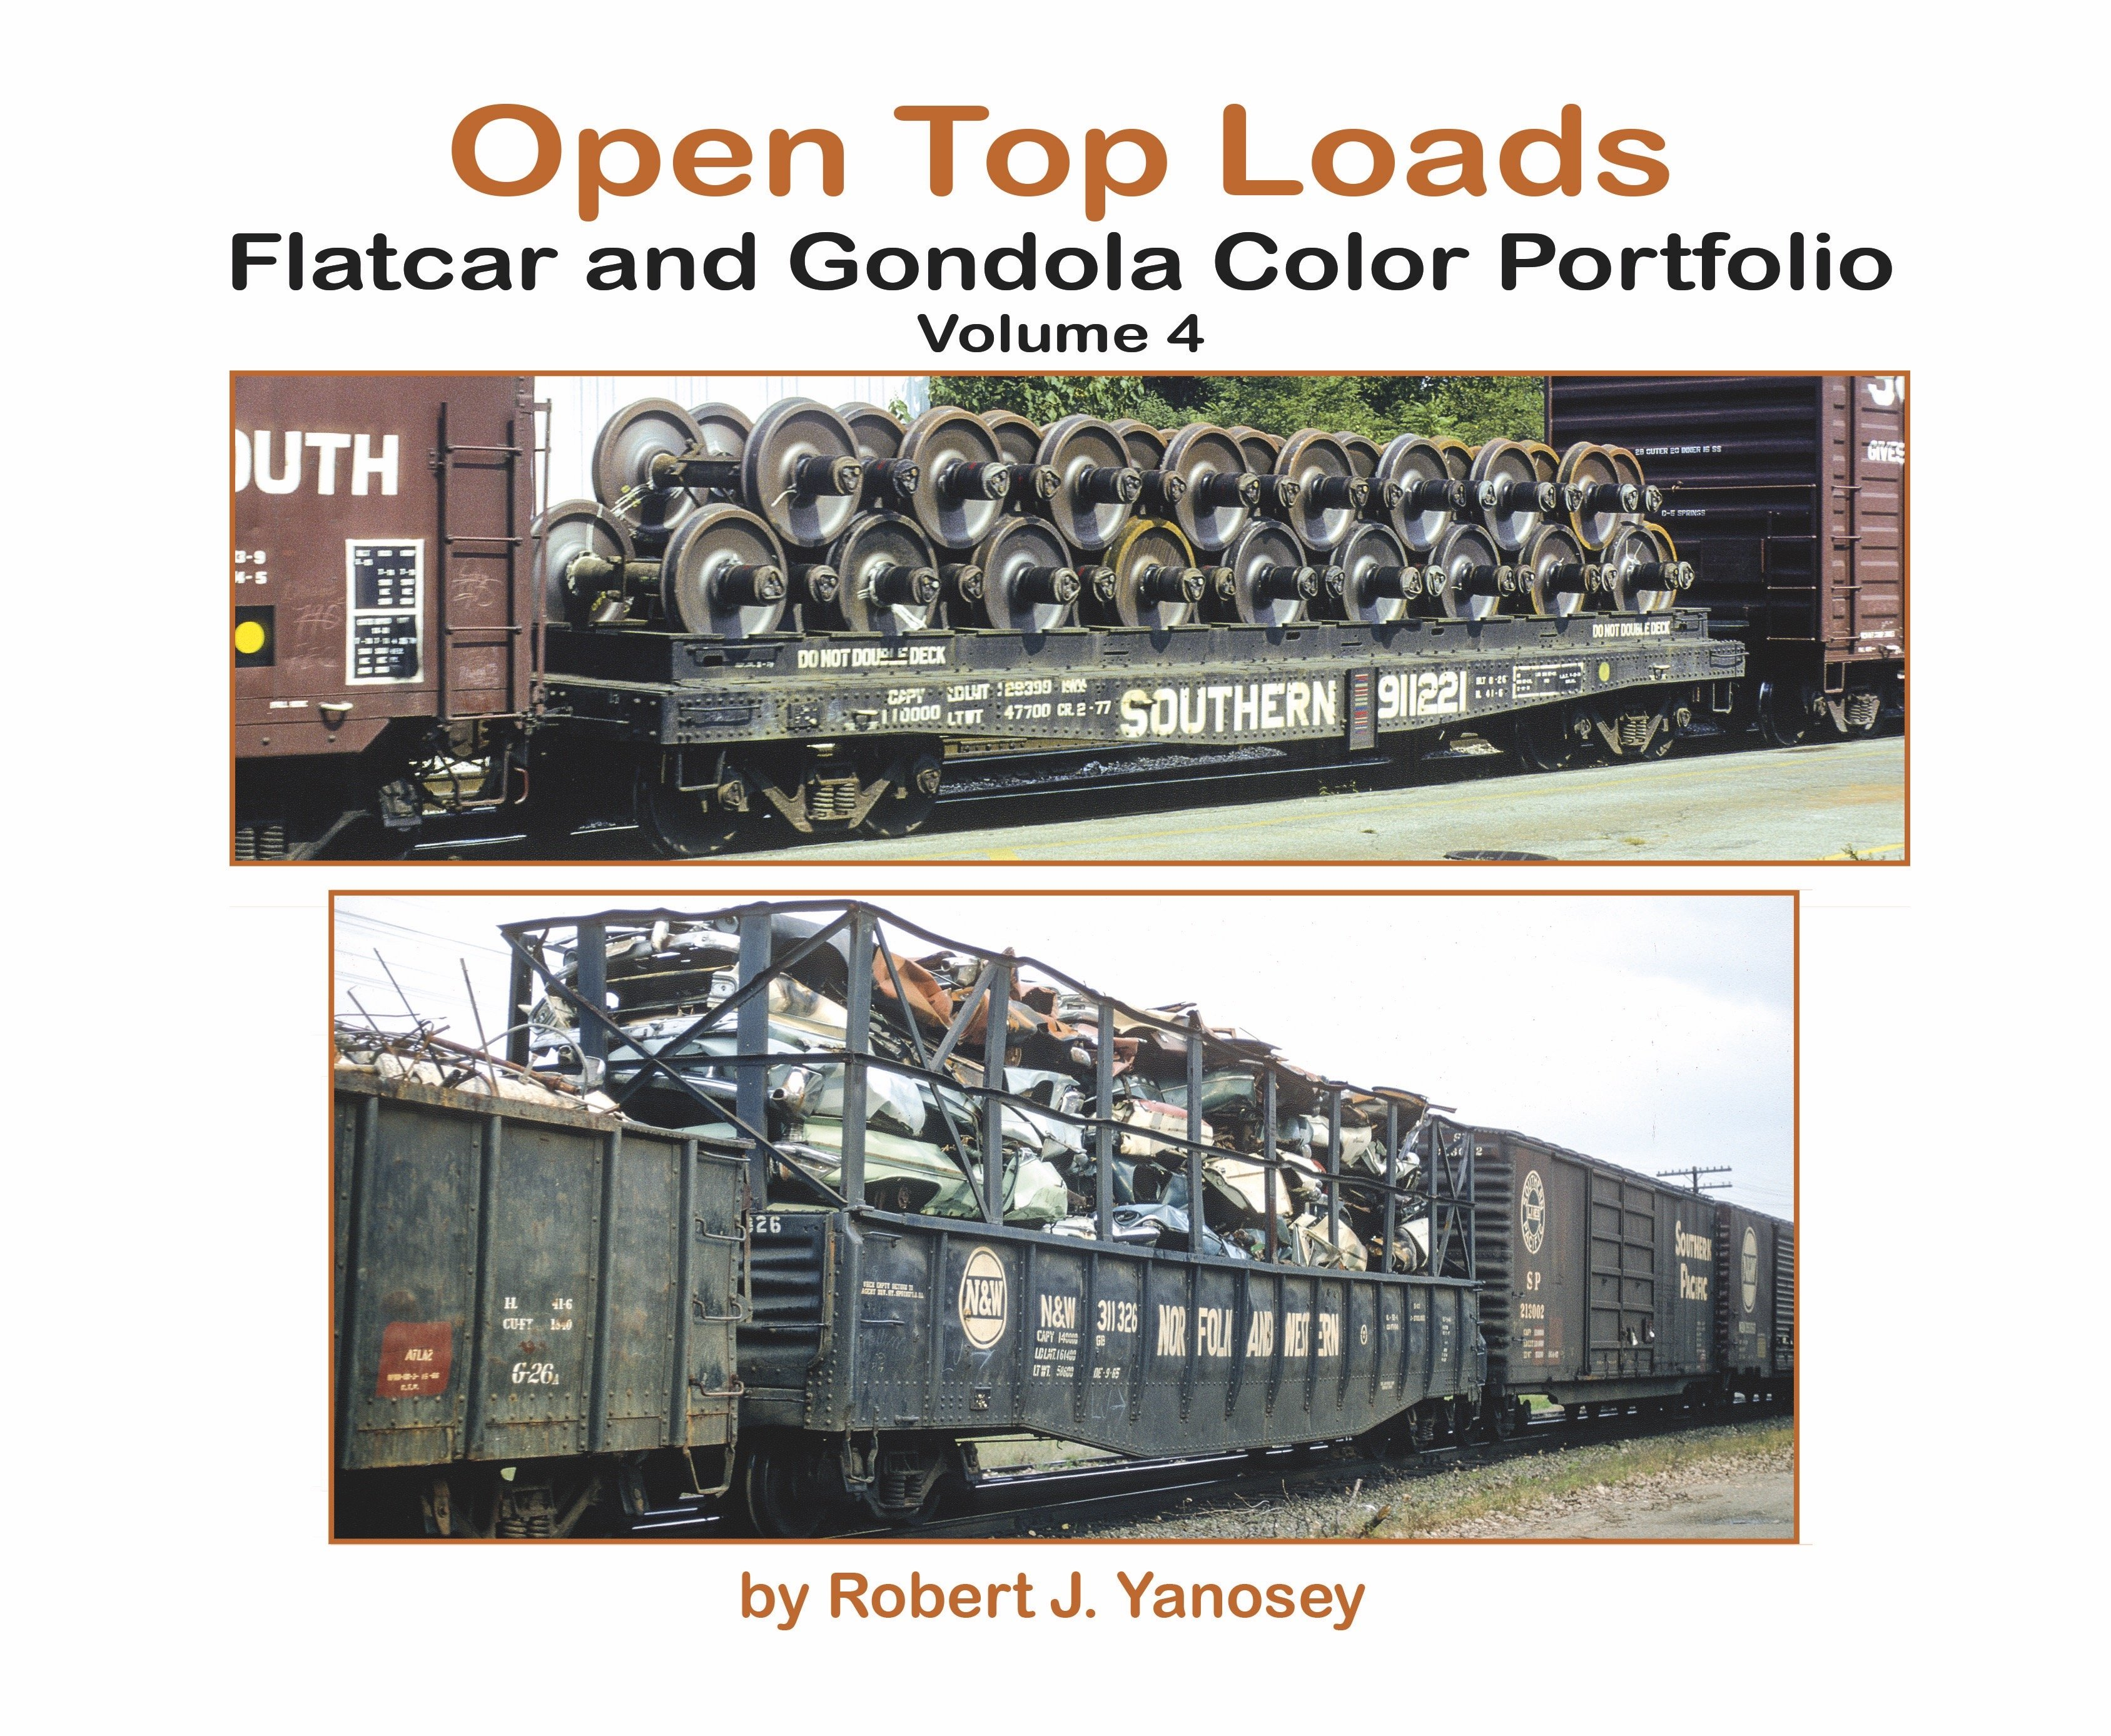 Open Top Loaders - Flats & Gondolas, Vol. 4